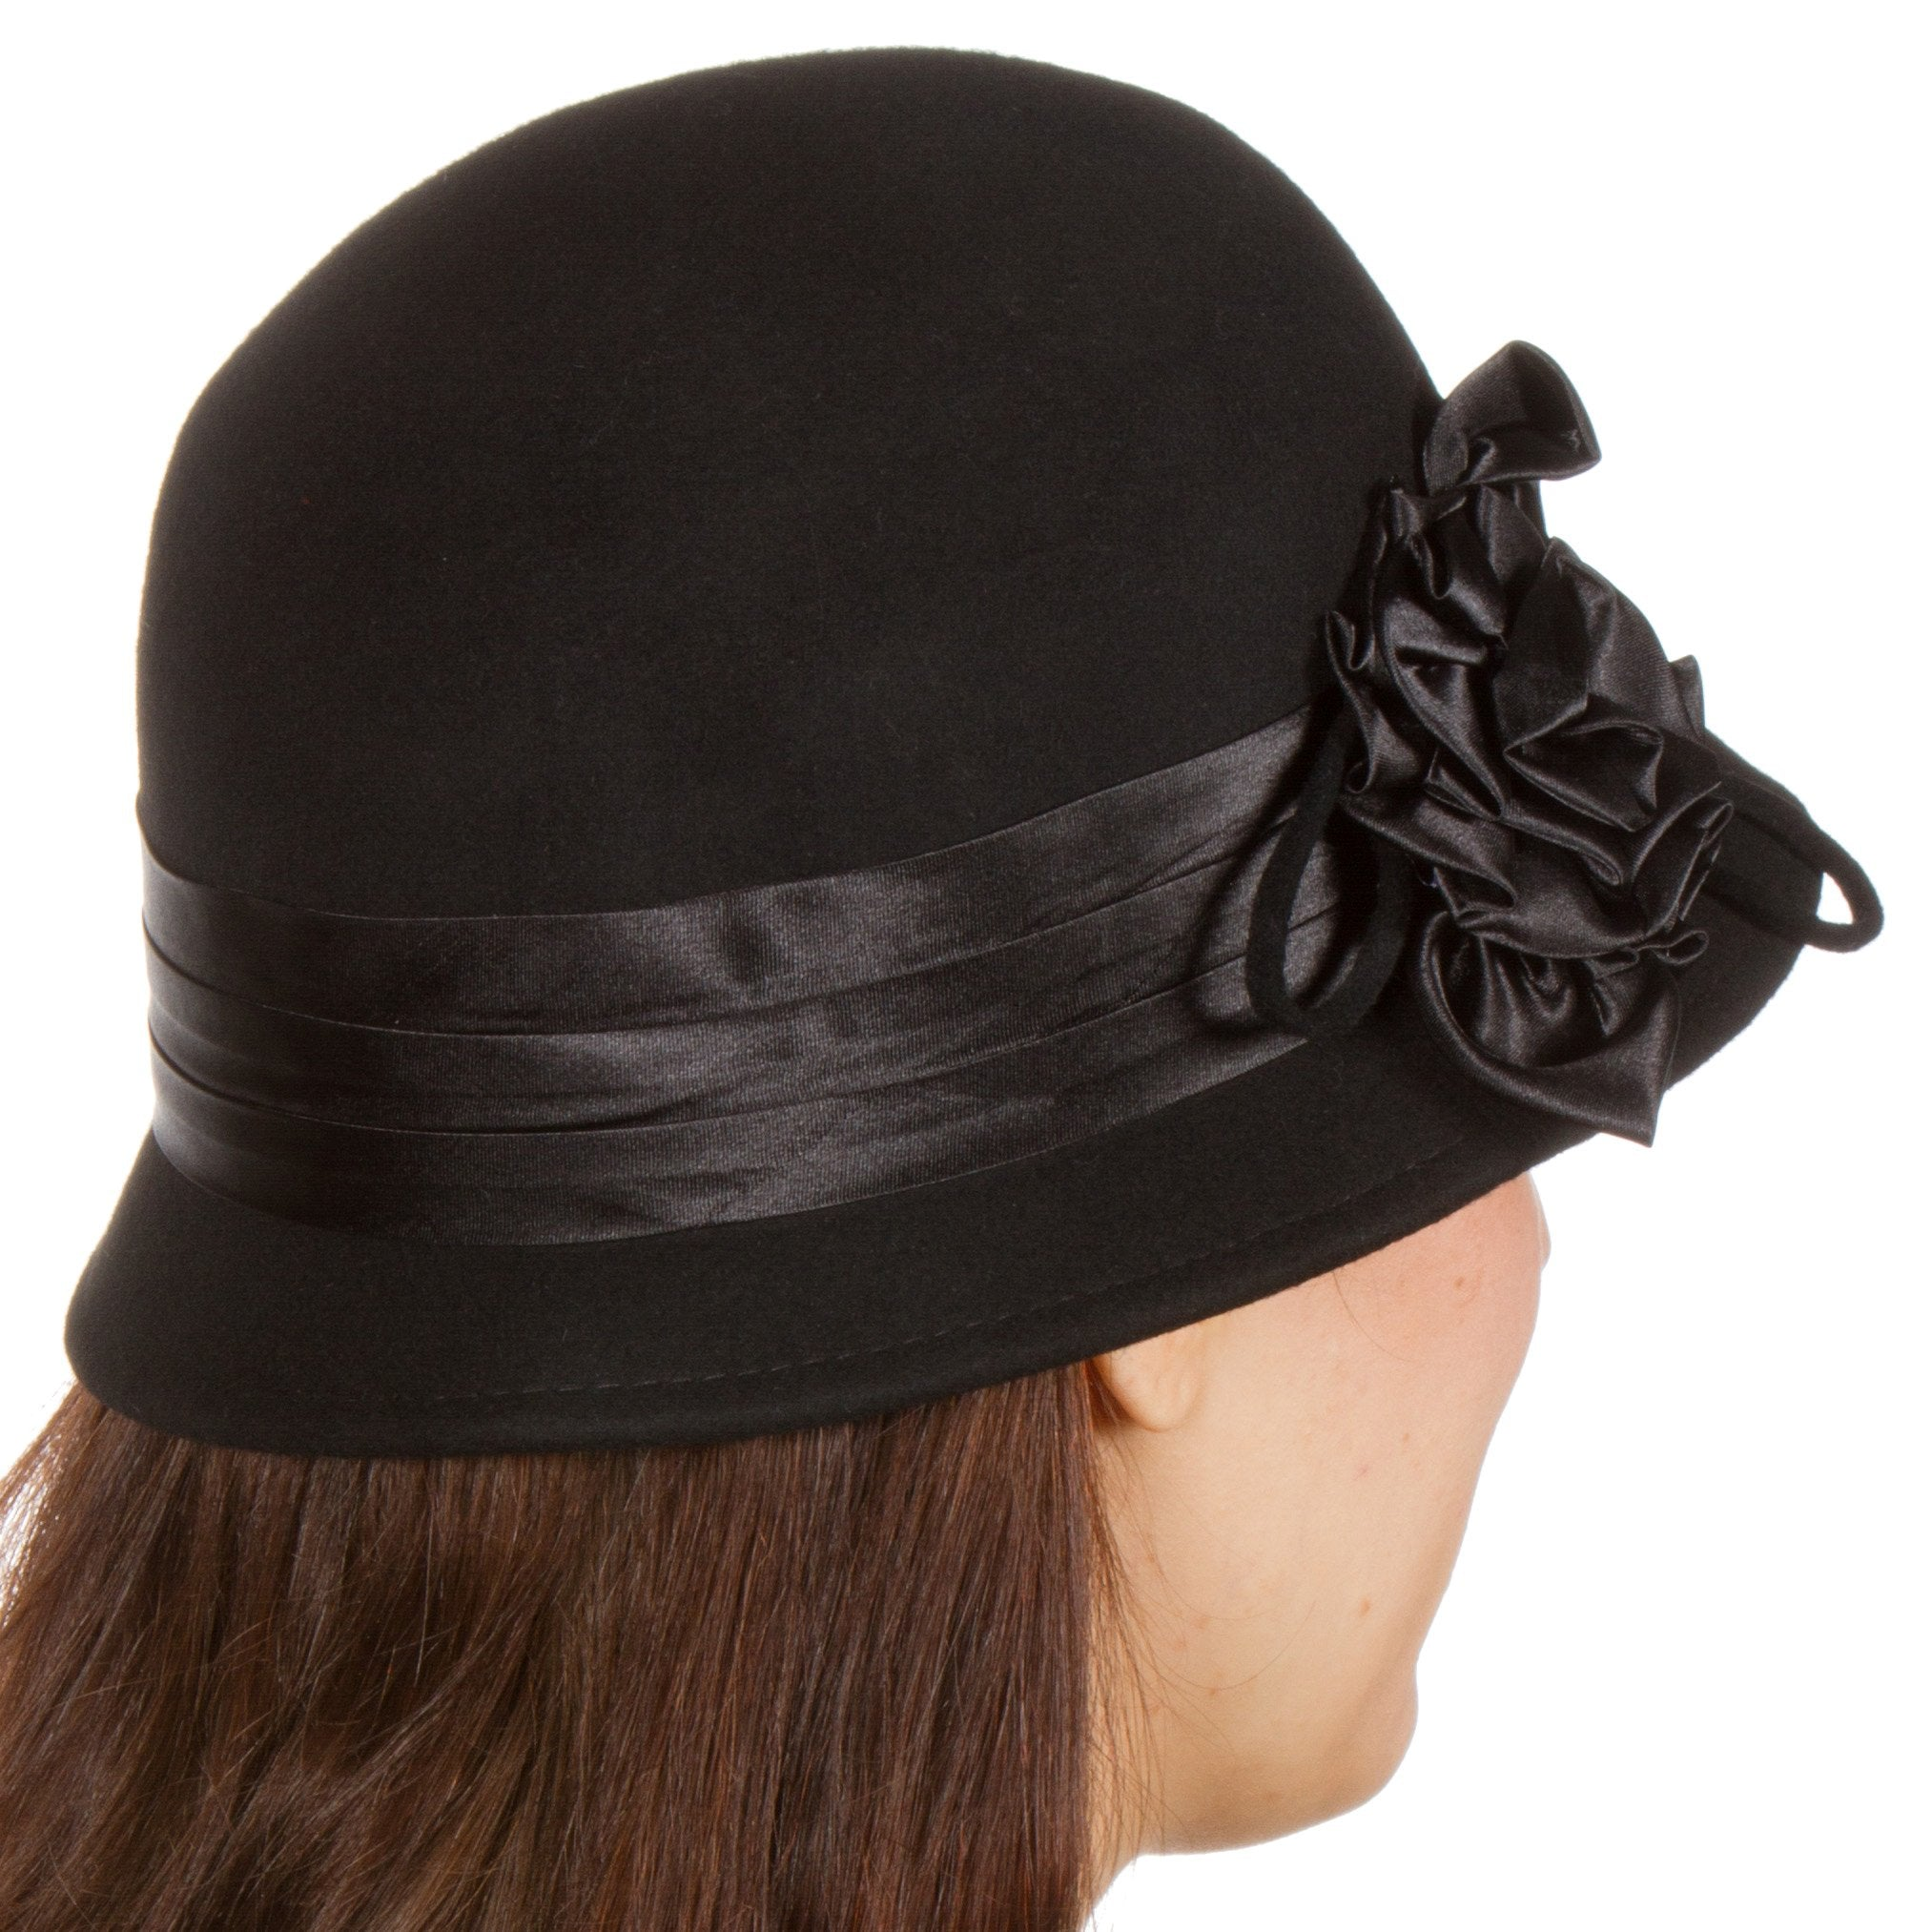 a368f9e5b38 Sakkas Marilyn Vintage Style Wool Cloche Bucket Winter Hat with Satin Flower